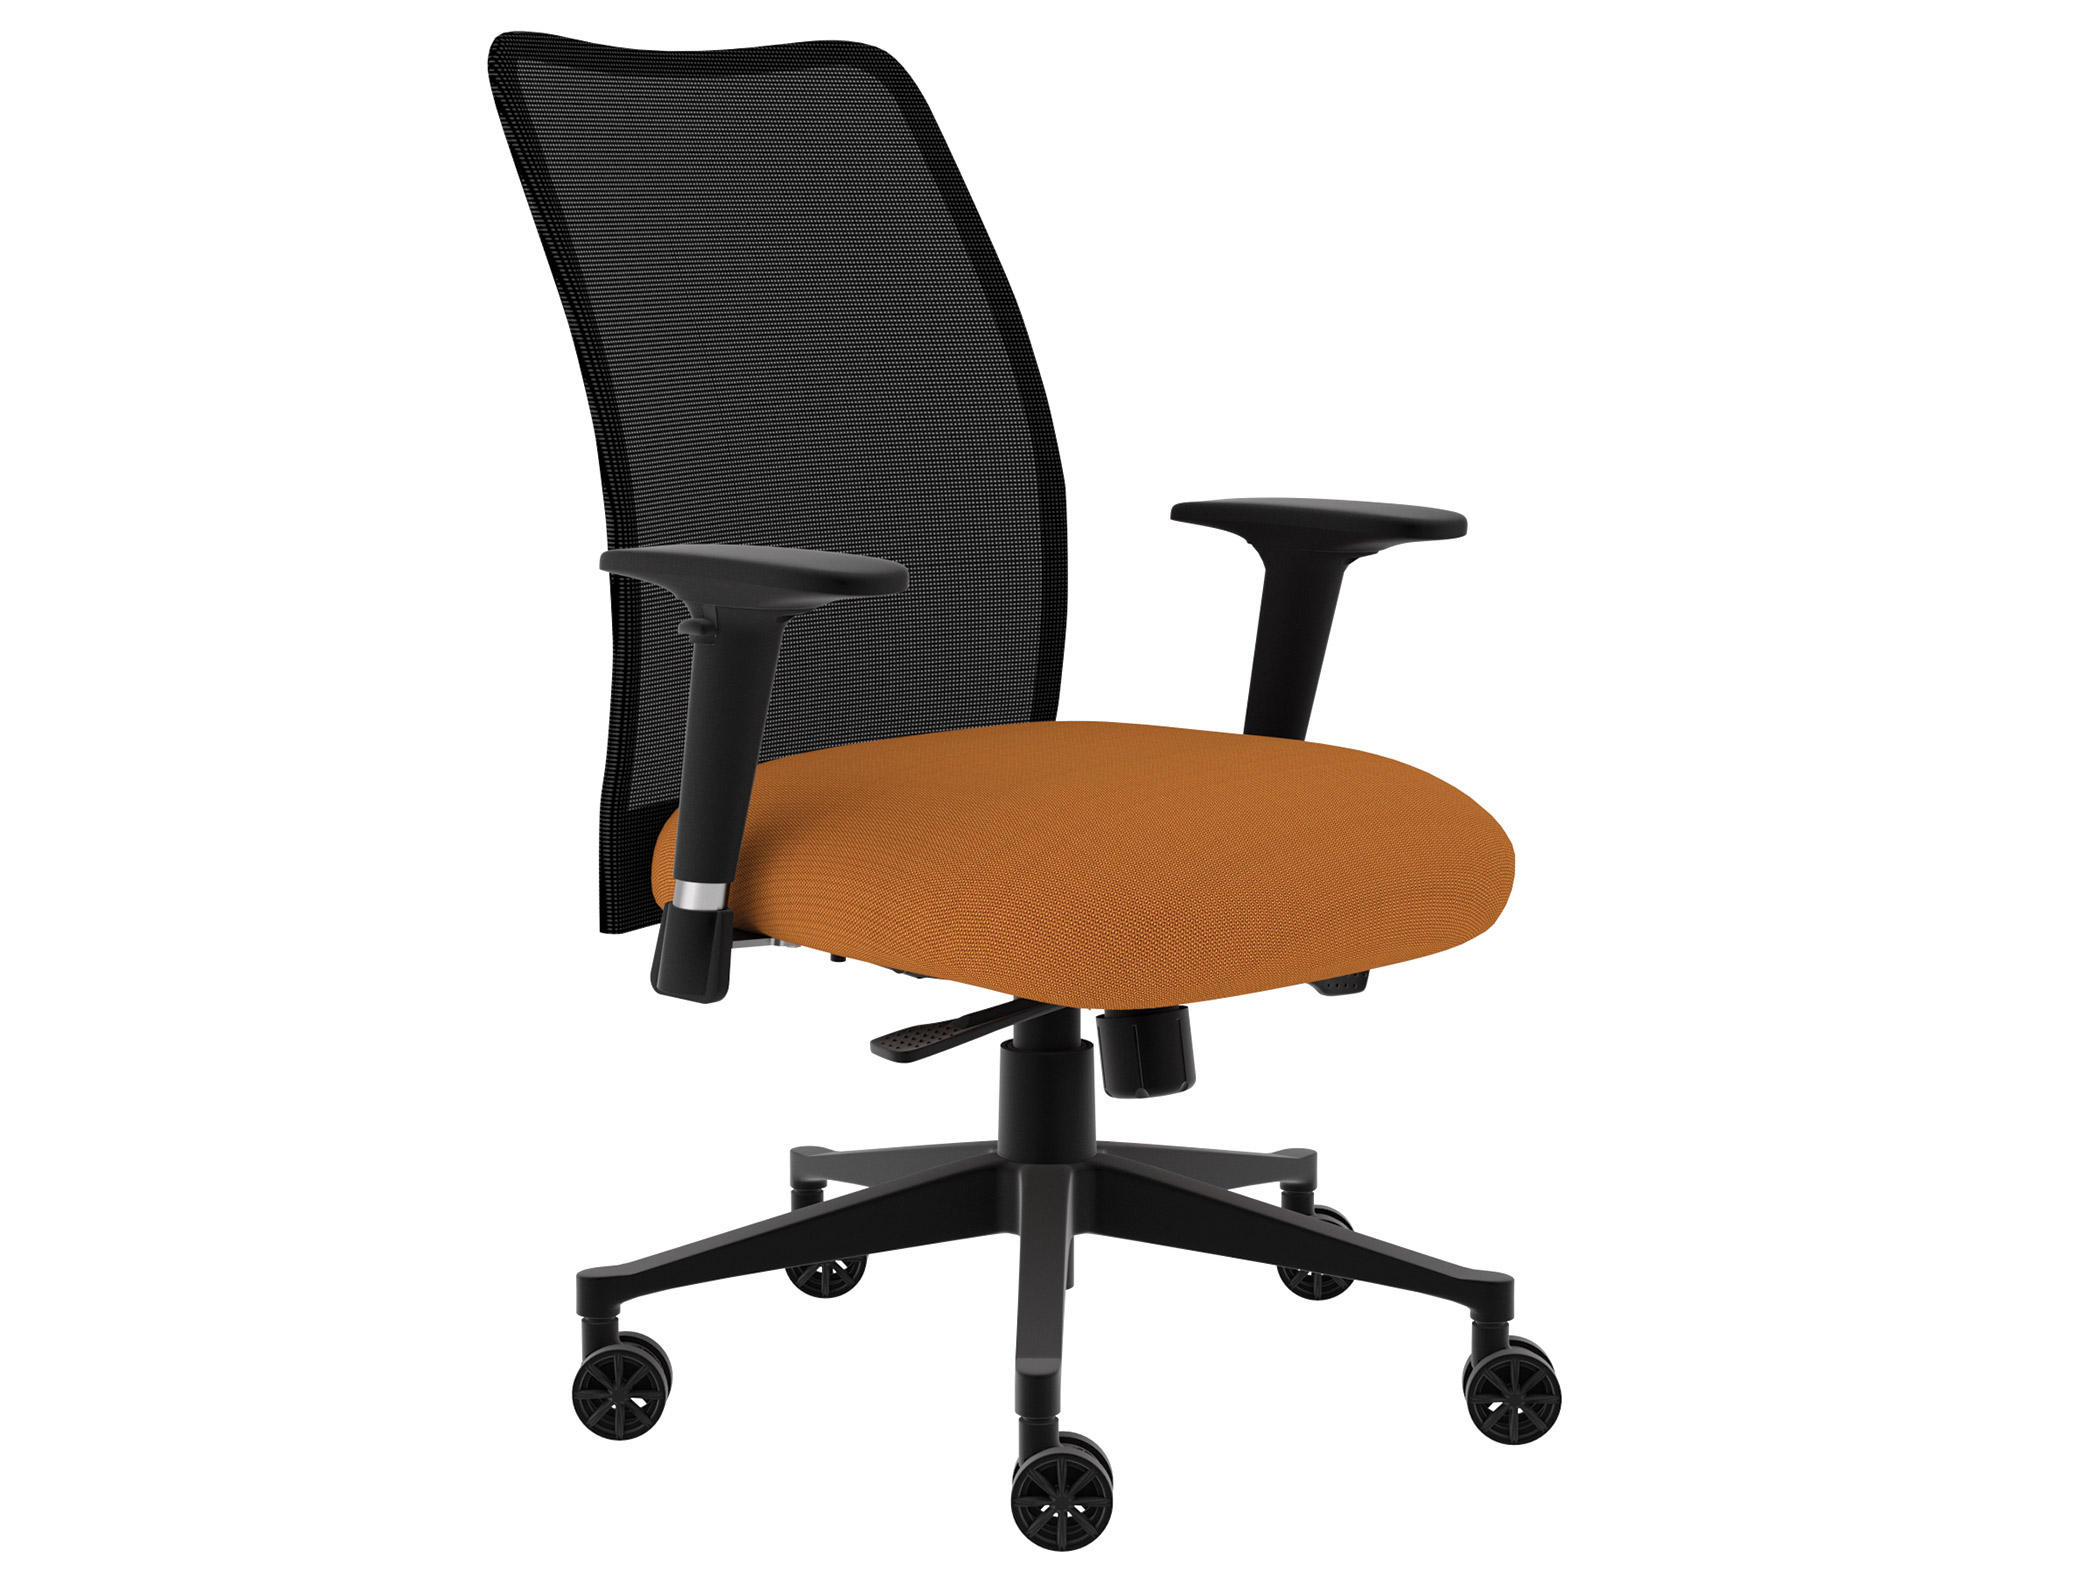 Chairs For Office #CTM-5500-B-TA